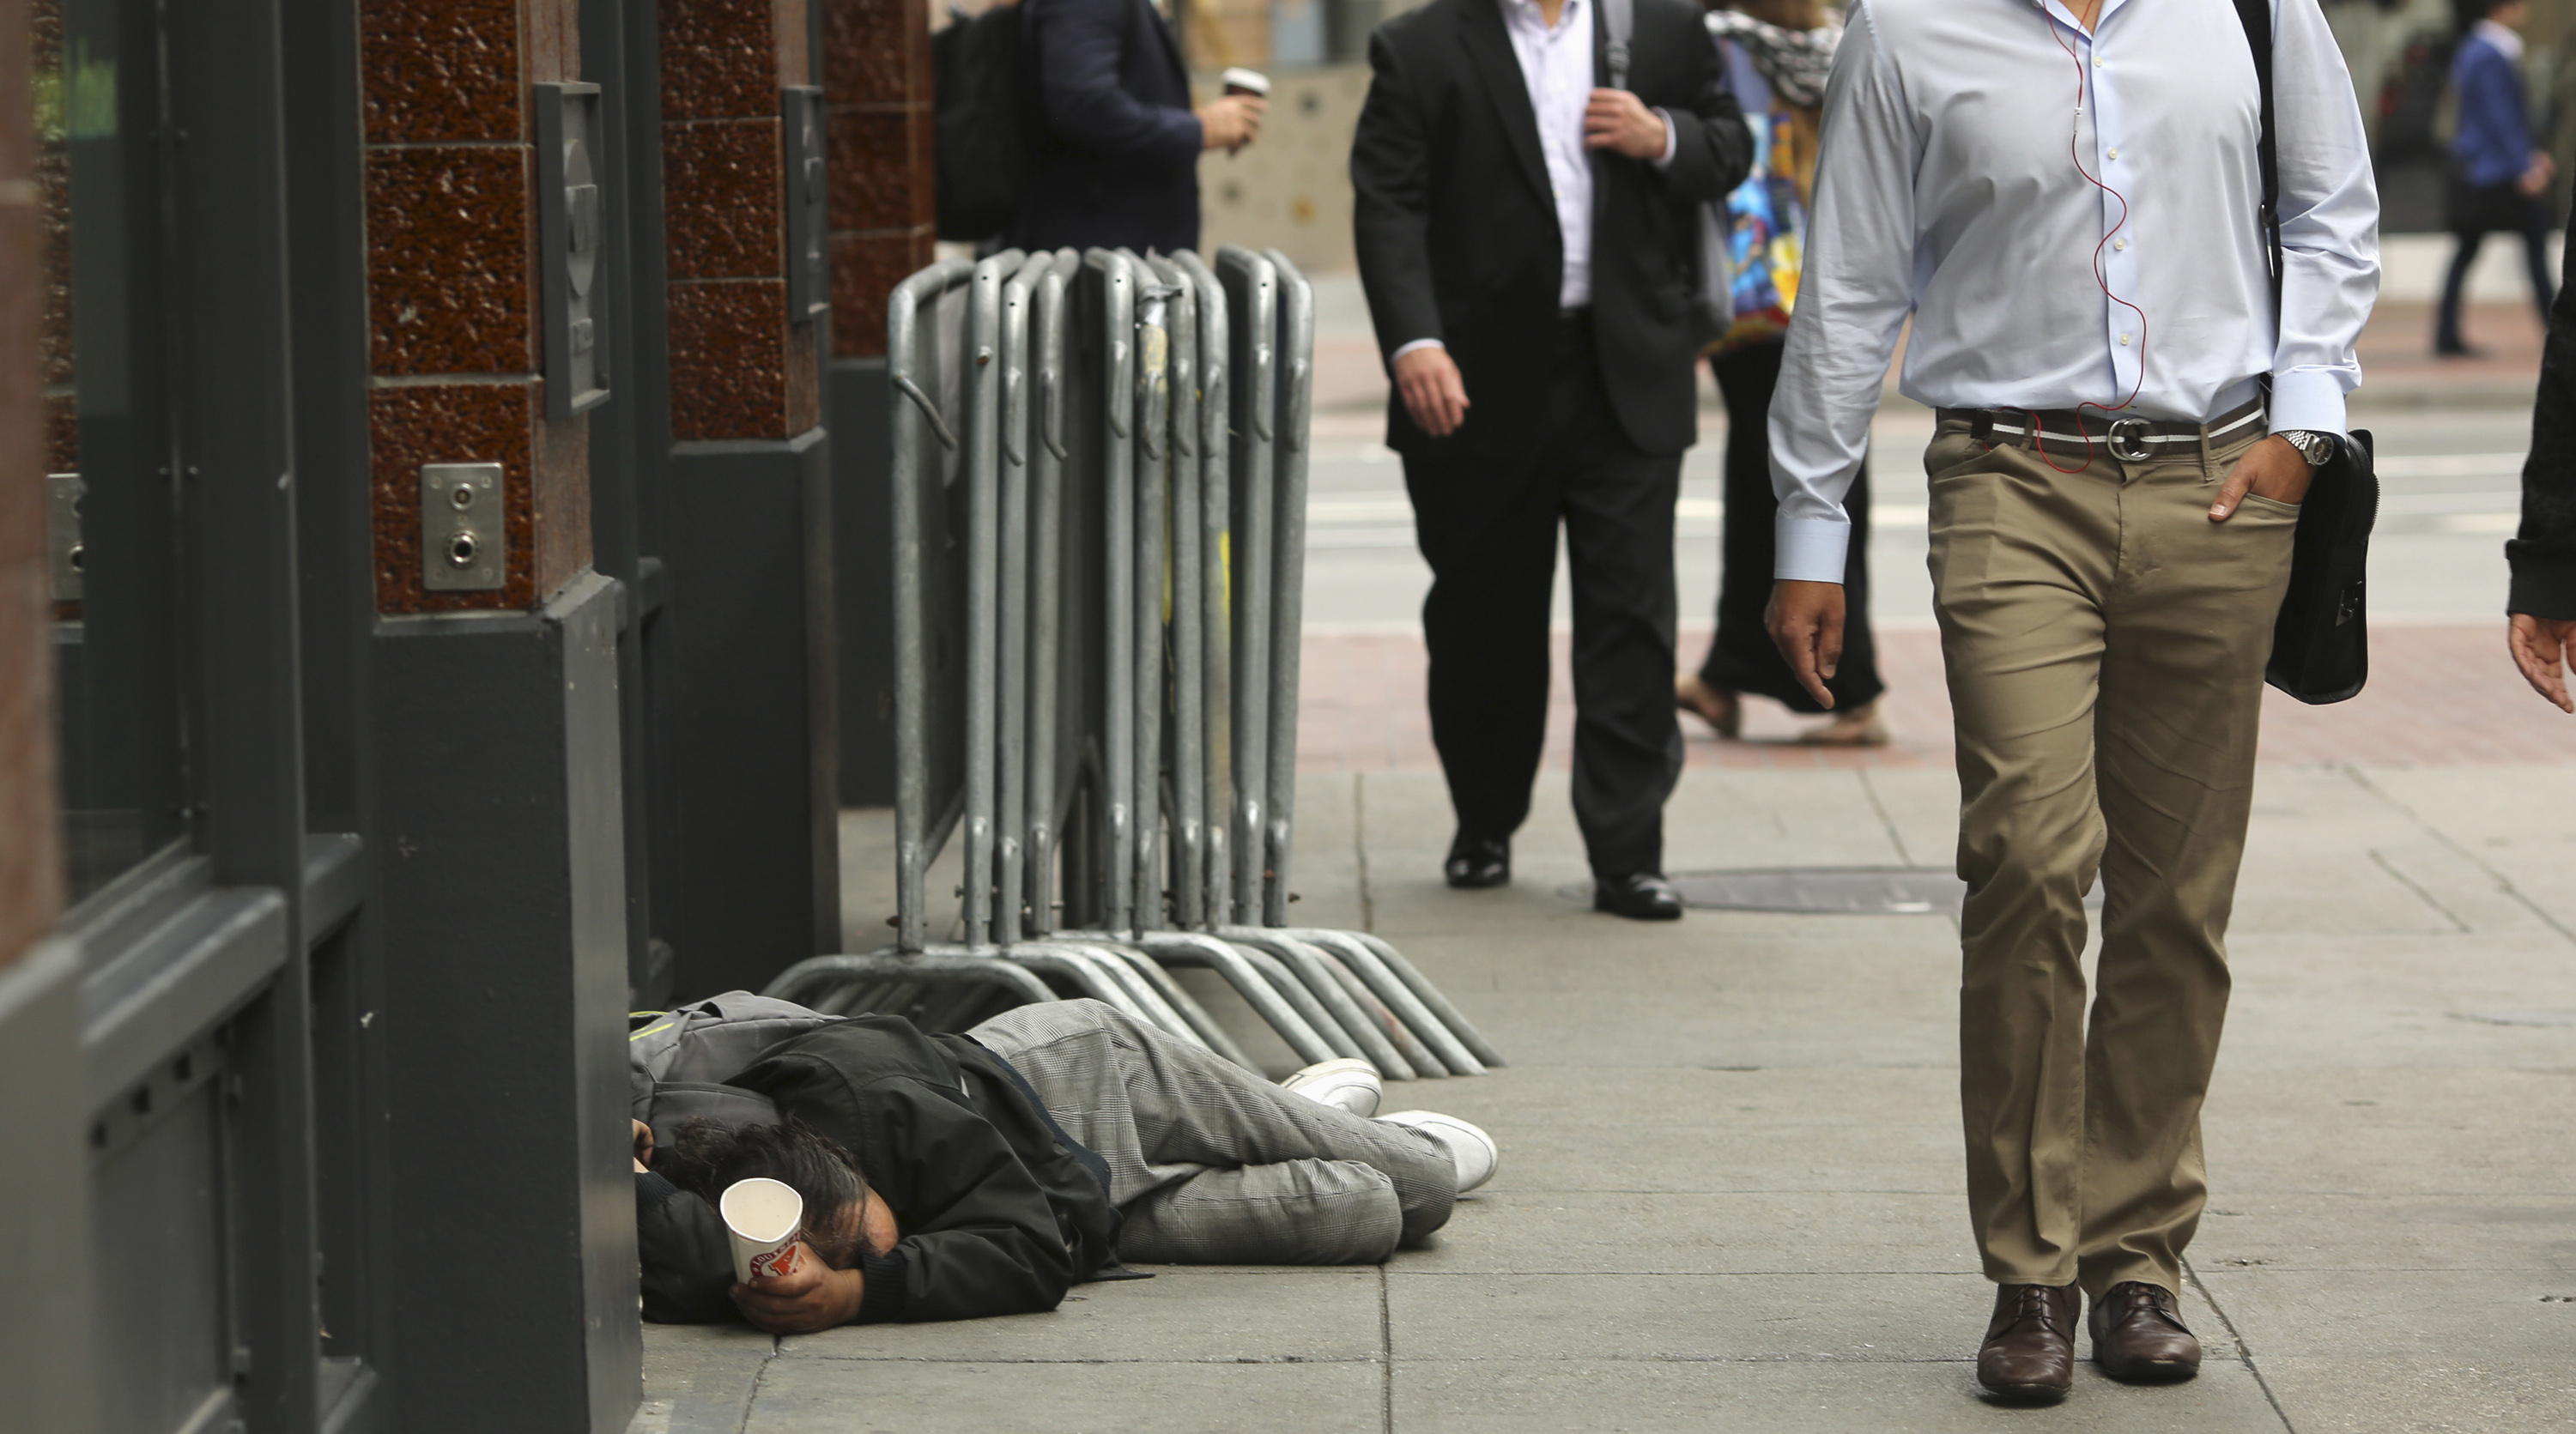 Pedestrians pass a man laying on the sidewalk near the Powell Street BART and MUNI public transportation system station in San Francisco